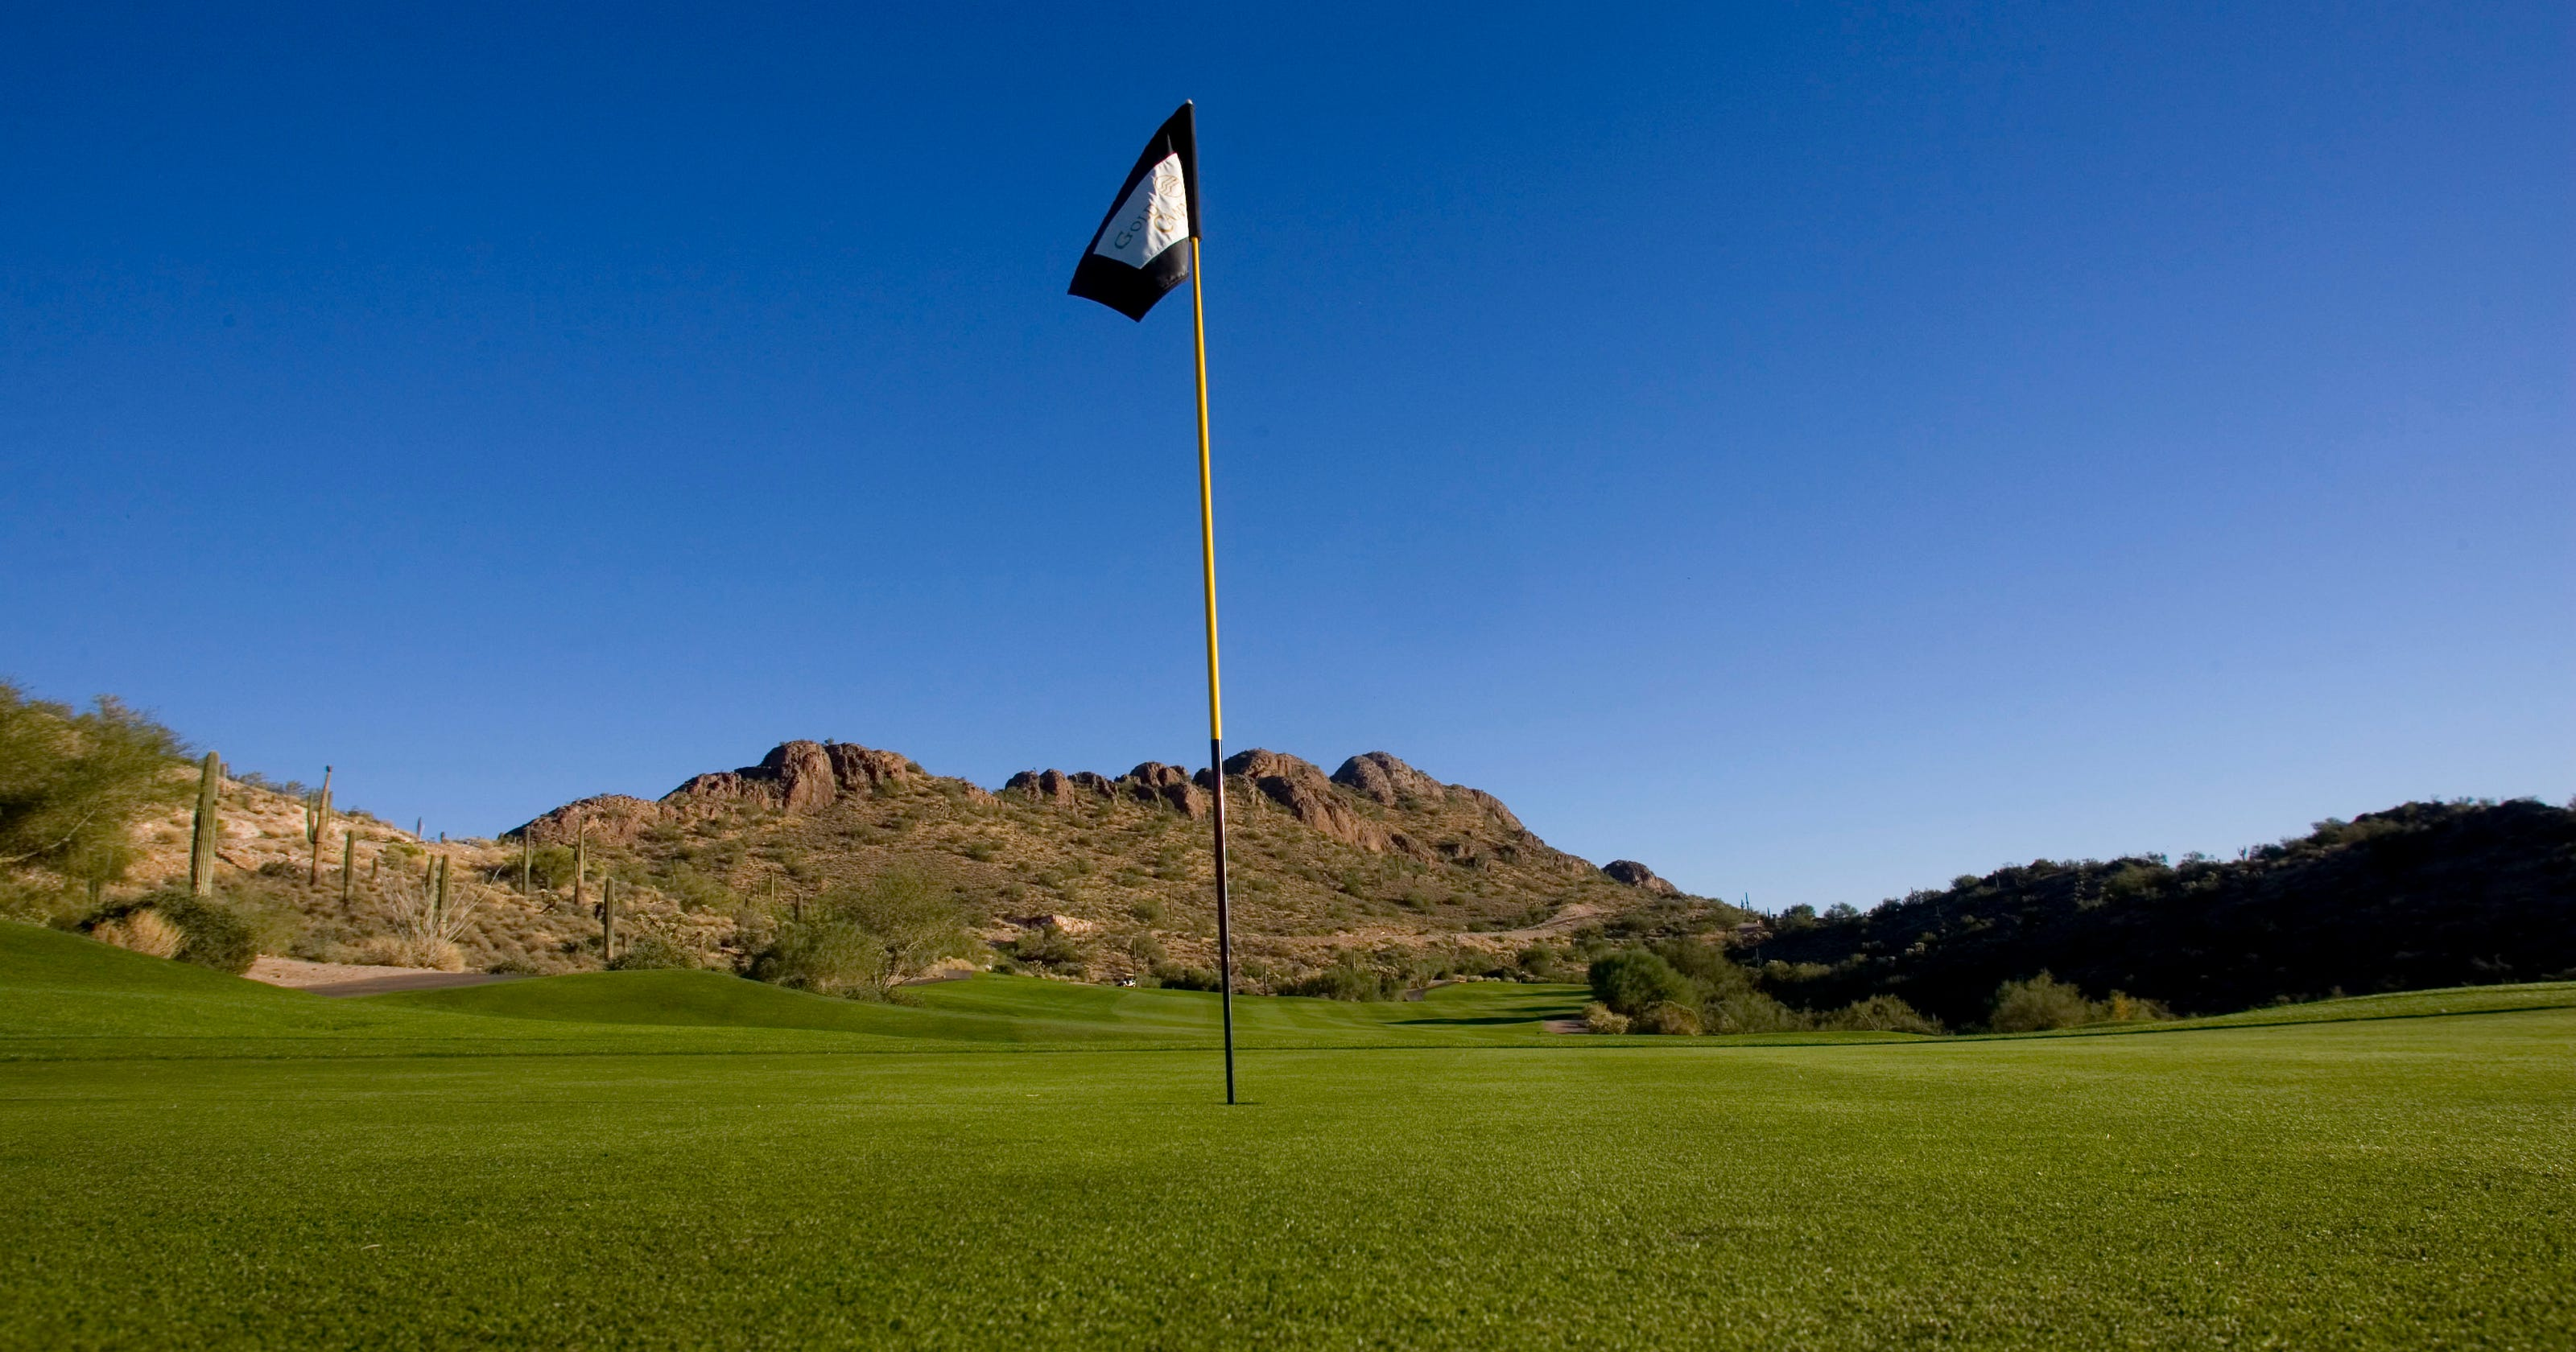 Aces: List of golf holes in one in Arizona 2017